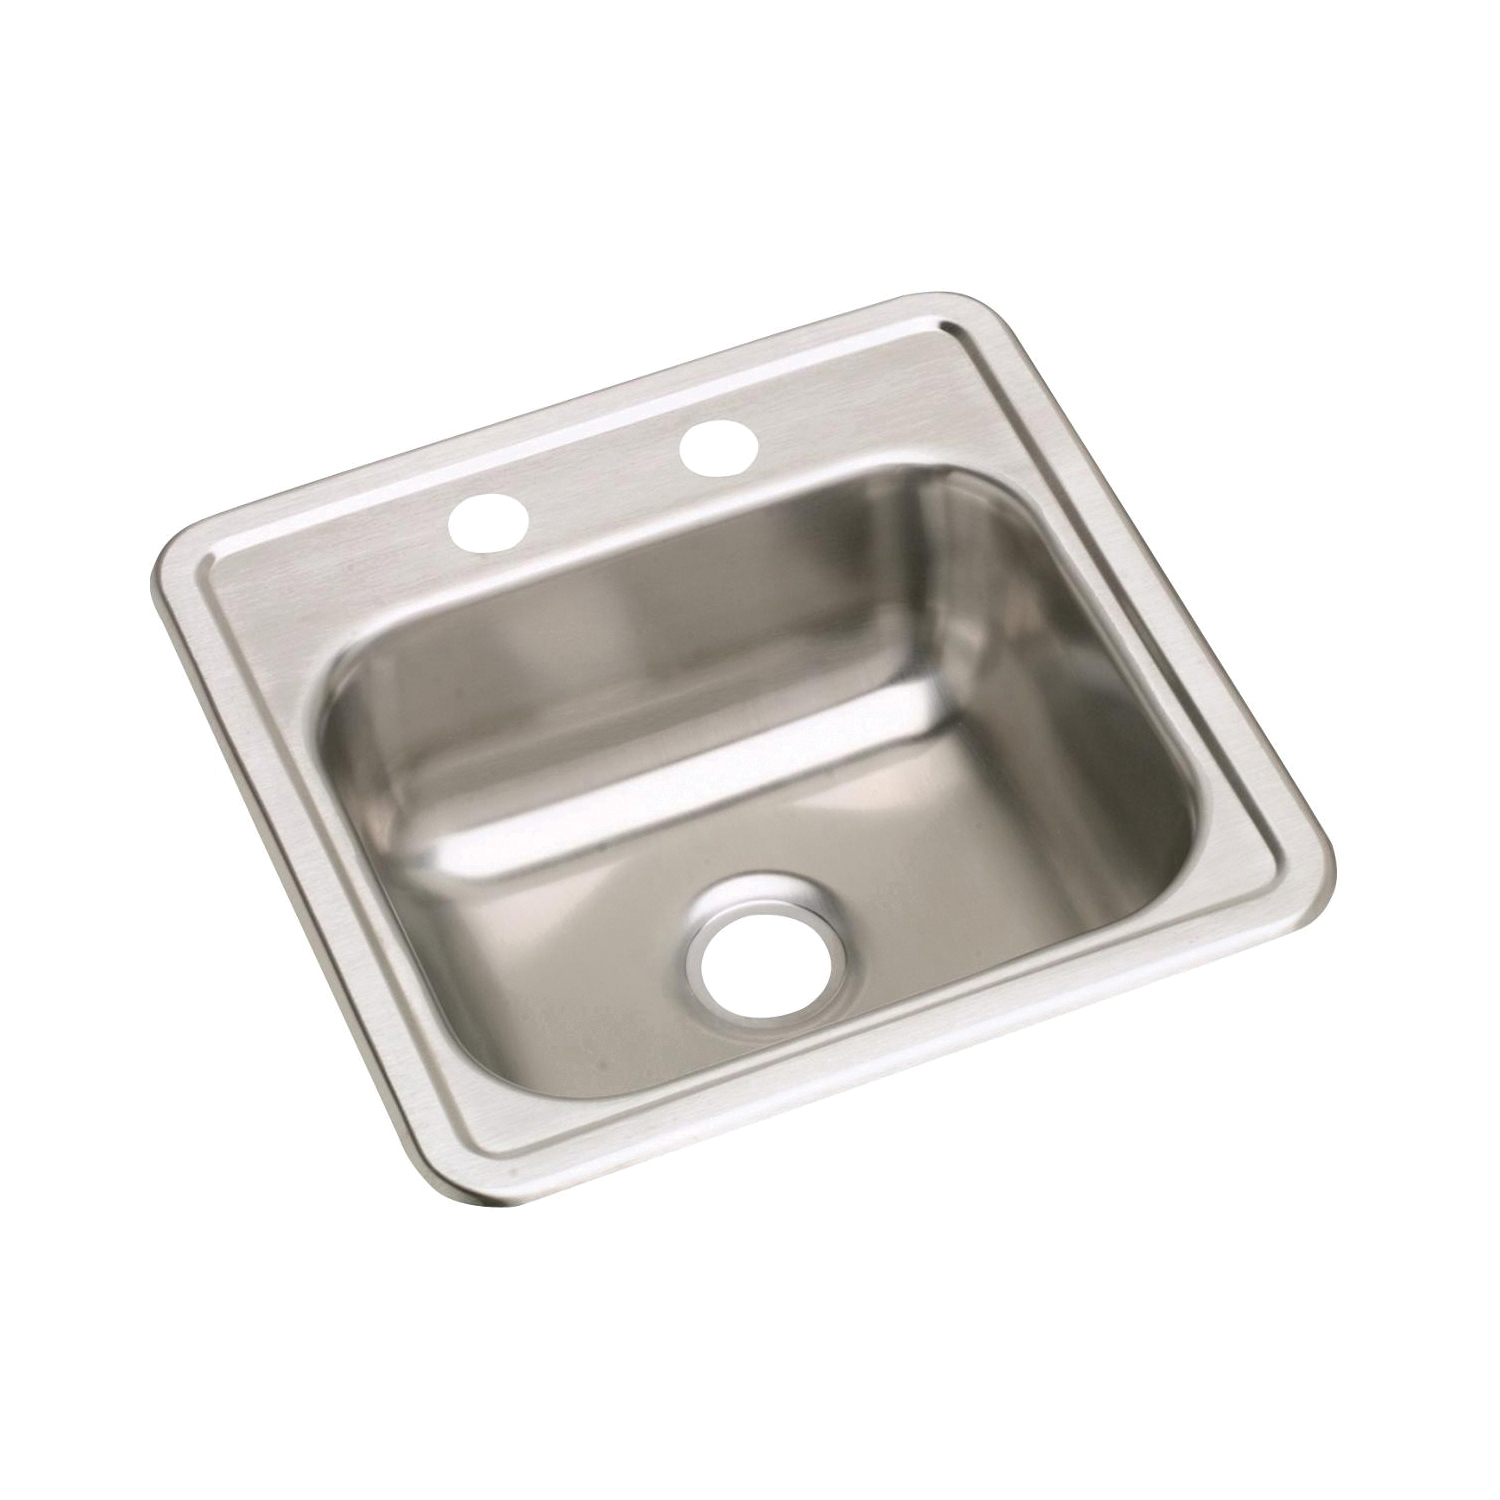 Elkay D115152 Dayton Bar Sink, Square, 2 Faucet Holes, 15 in W x 5-3/16 in D x 15 in H, Top Mount, Stainless Steel, Satin